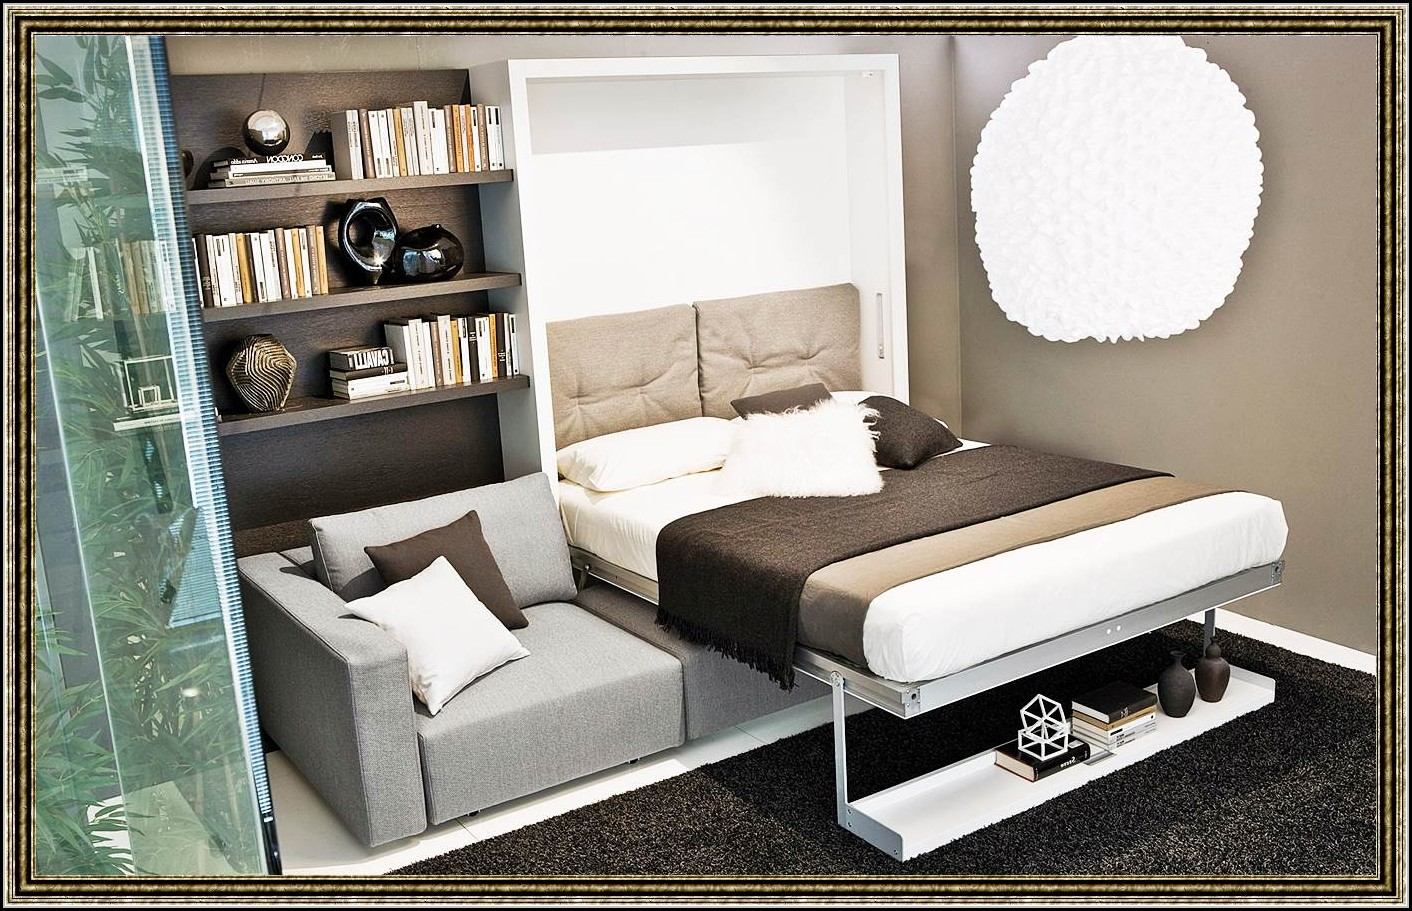 bett mit integriertem regal betten house und dekor galerie zk137y21dg. Black Bedroom Furniture Sets. Home Design Ideas